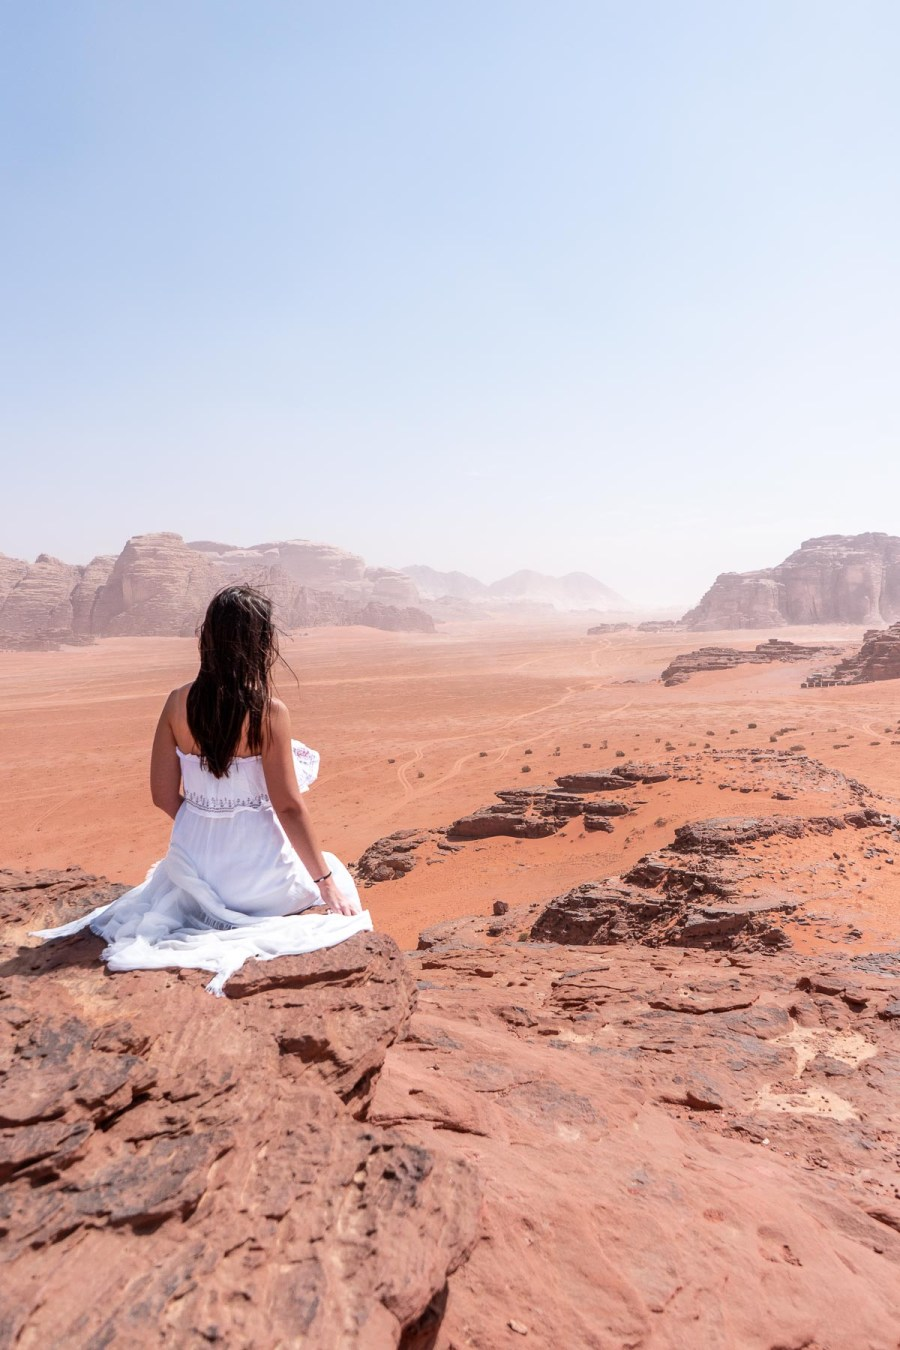 Girl in a white dress looking at the view in the Wadi Rum, Jordan